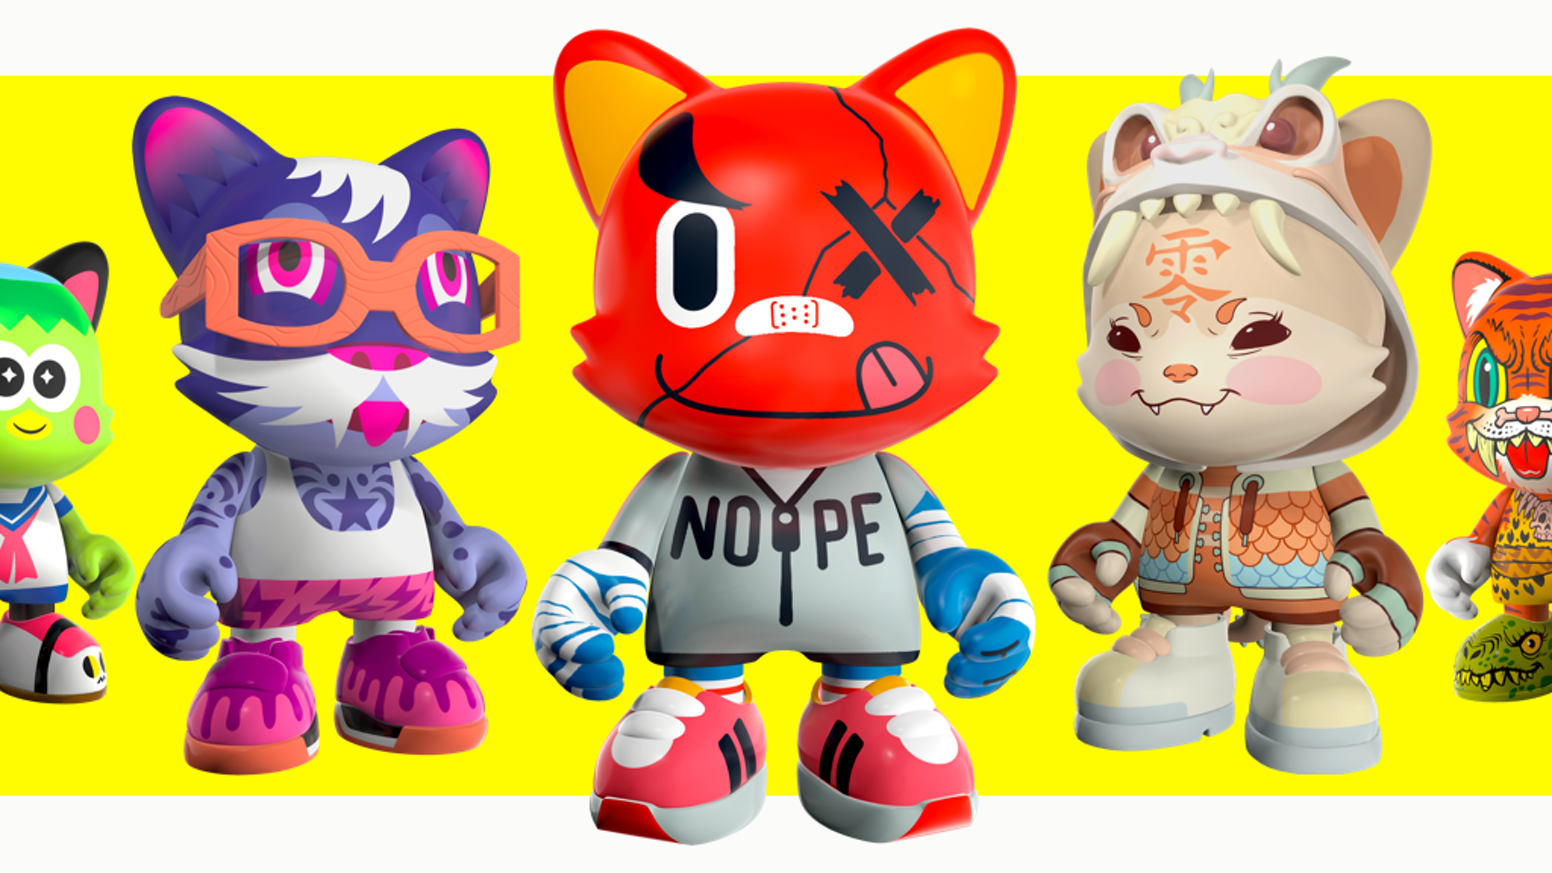 Brilliant designer toys by famous artists from around the world. Brought to you by Kidrobot founder Paul Budnitz & toy artist Huck Gee.